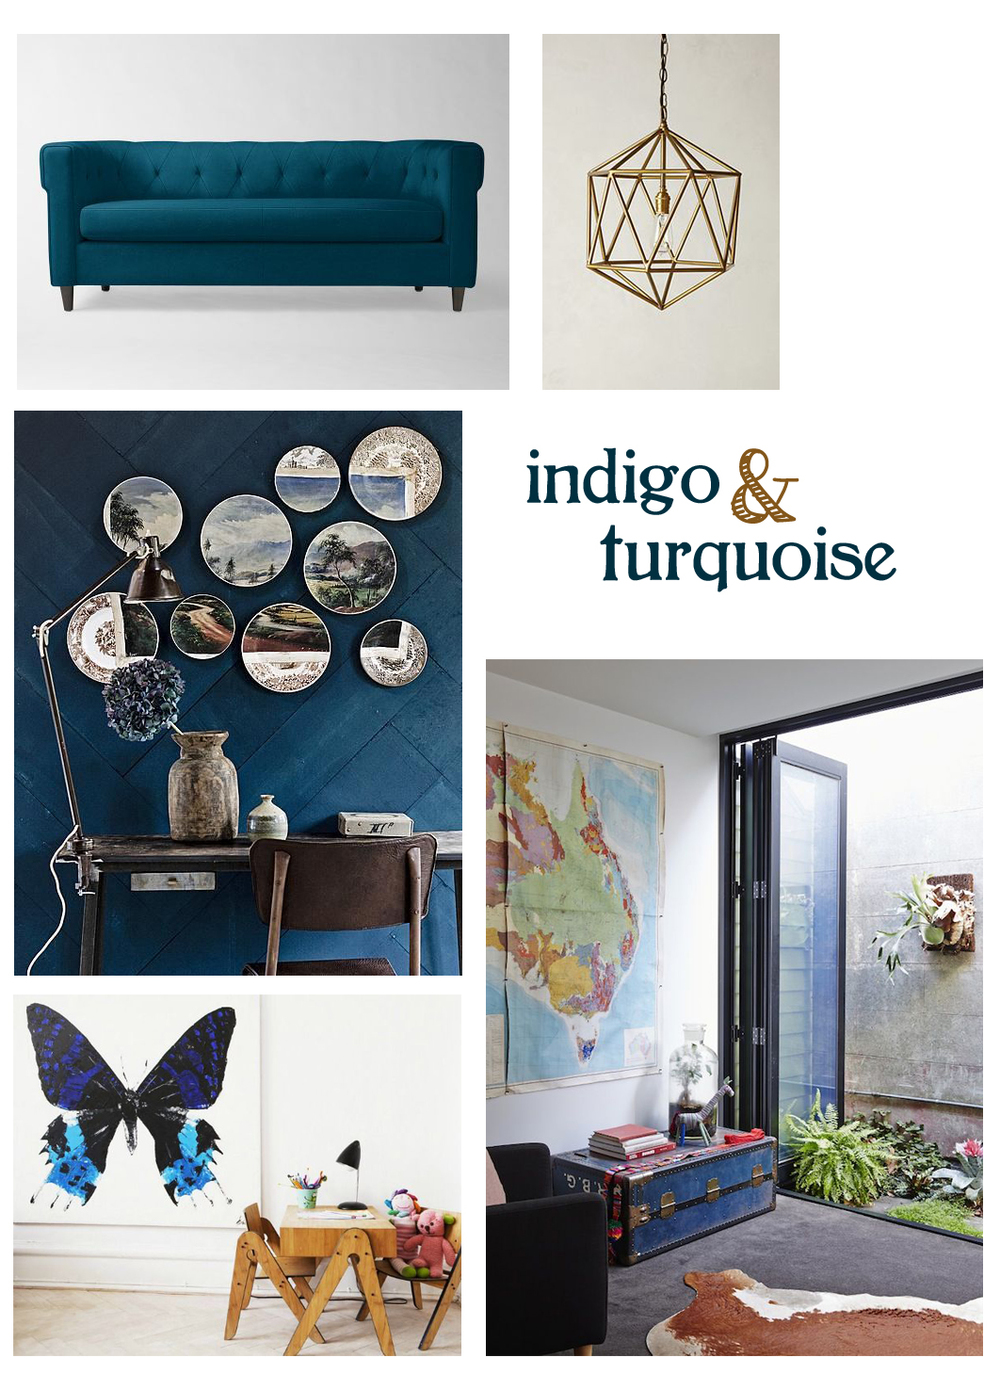 West Elm  Chester Tufted Sofa  | Anthropologie  Euclidean Pendant  |  |  vt wonen  via SF Girl by Bay  Indigo    Kid & Coe  via Handmade Charlotte  Butterflies  | The Design Files  Heirloom Trunk